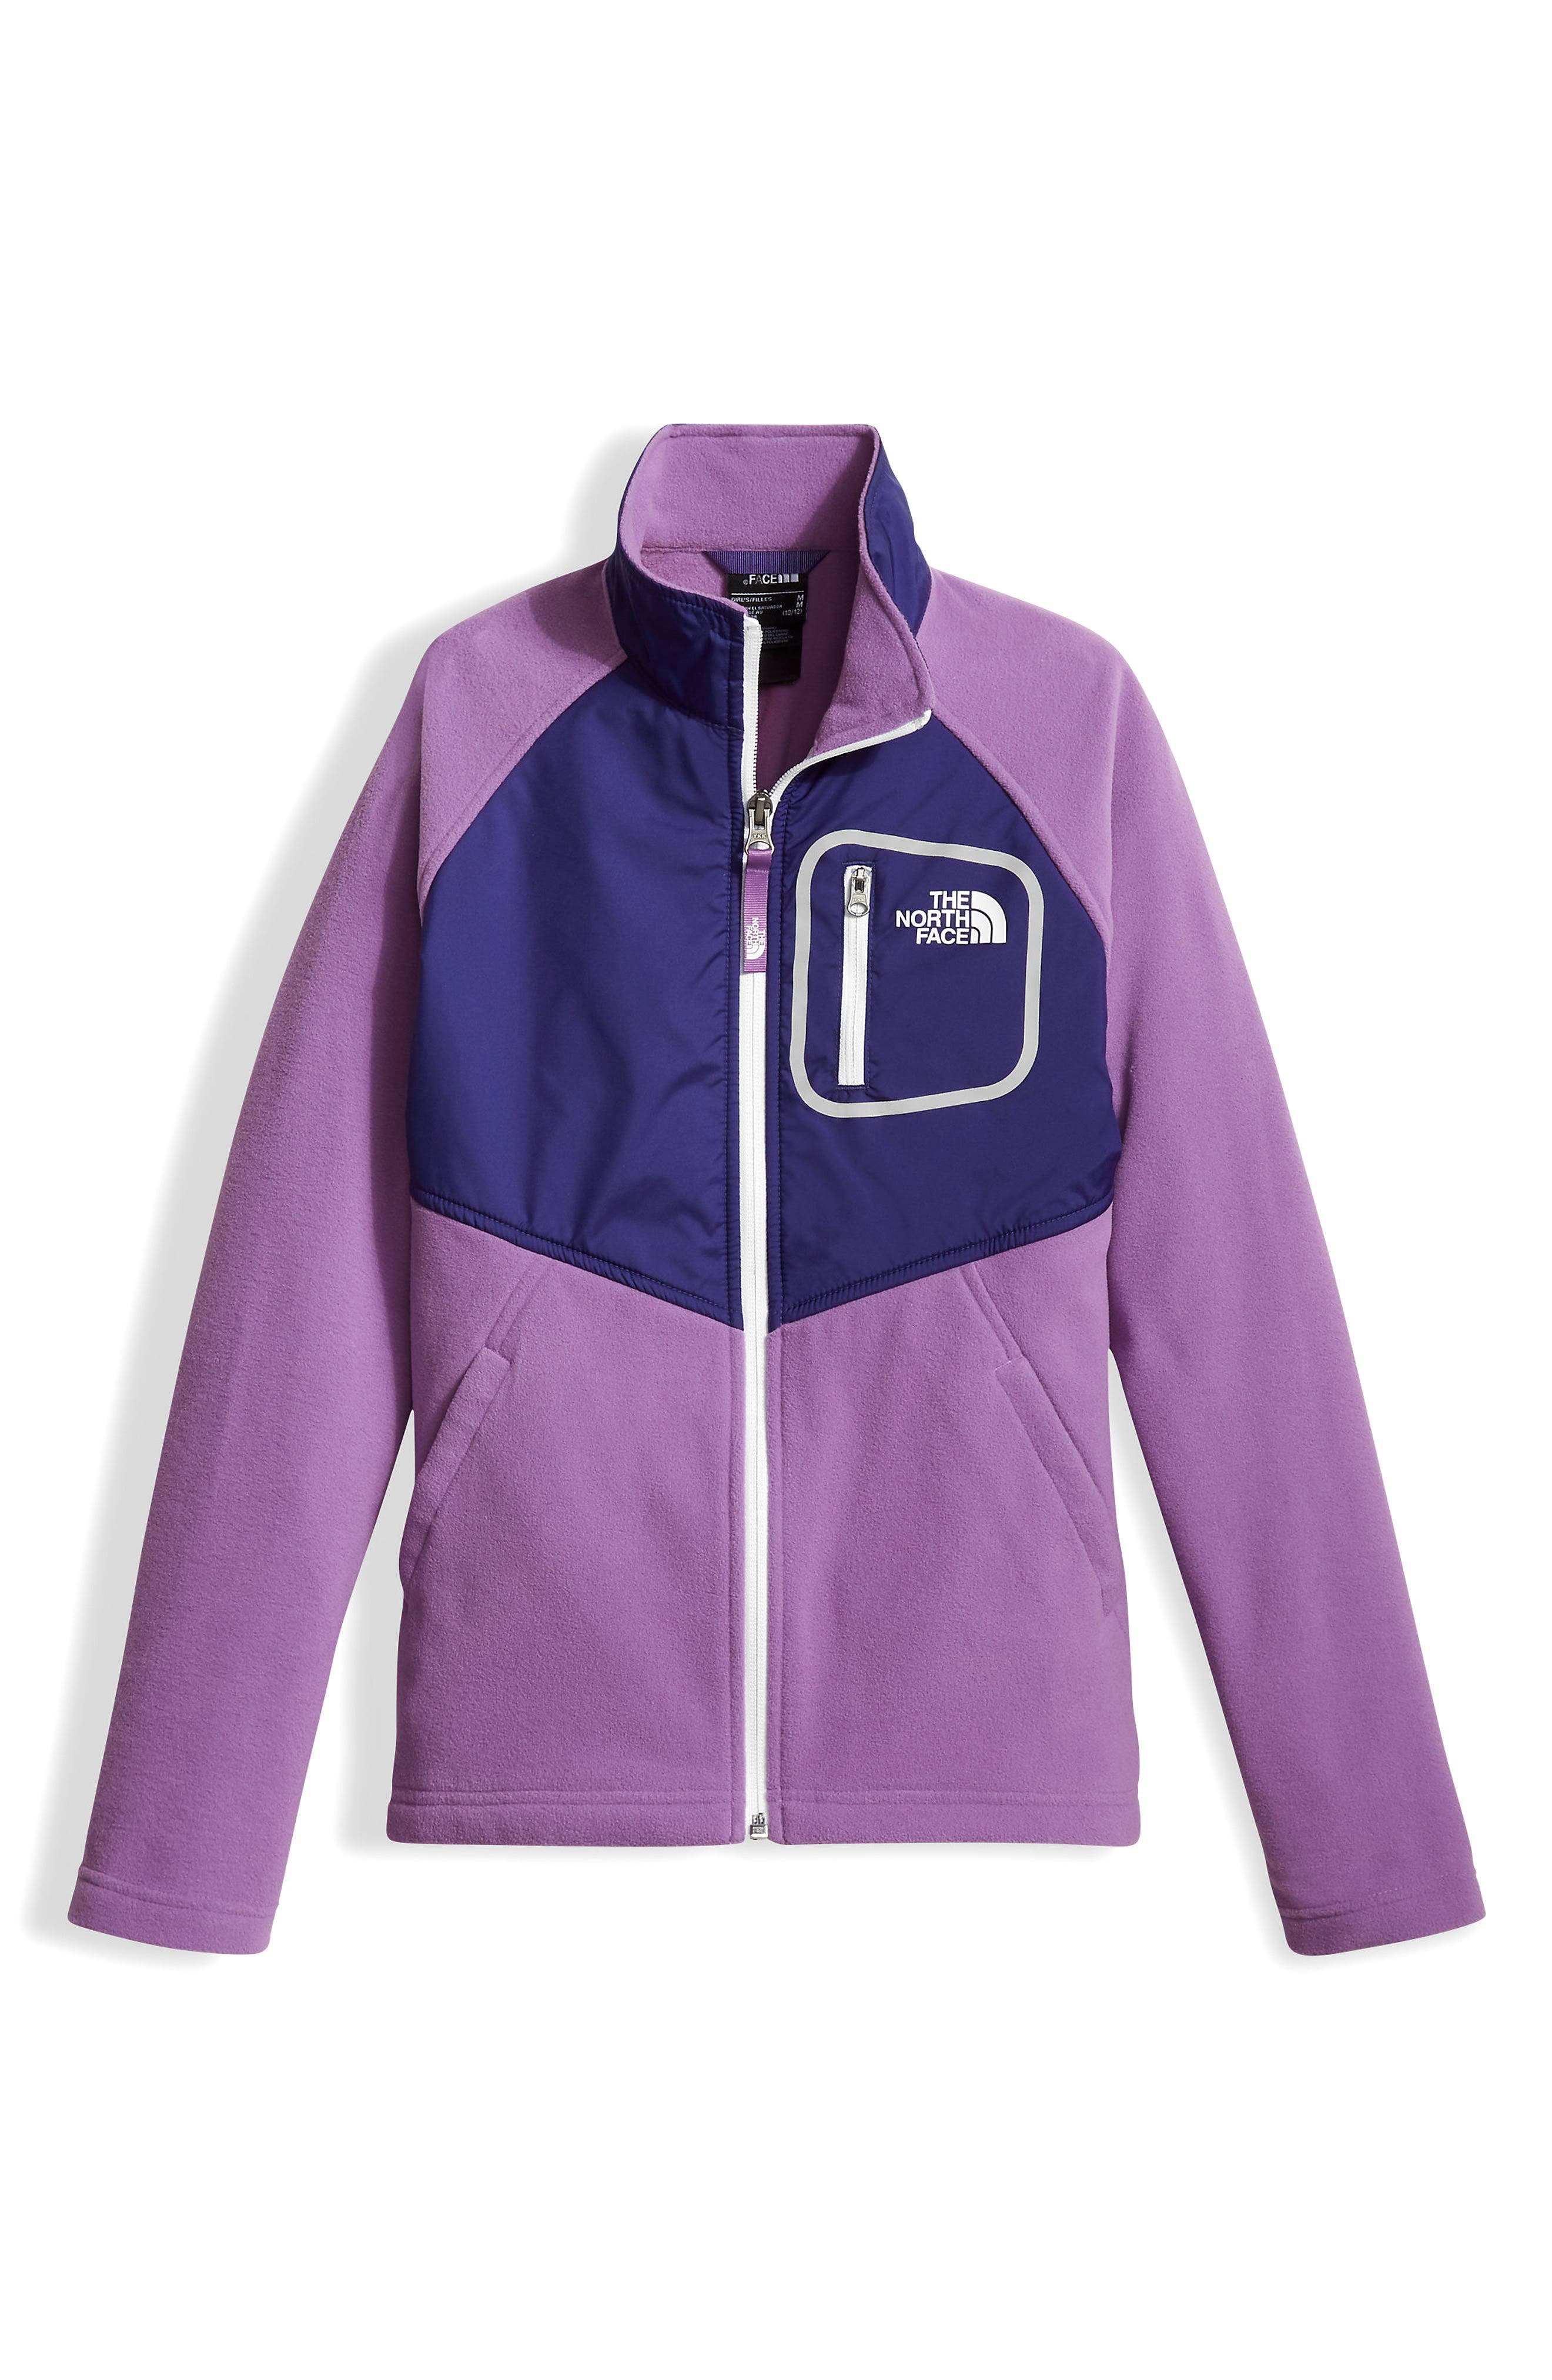 THE NORTH FACE Glacier Water Resistant Track Jacket